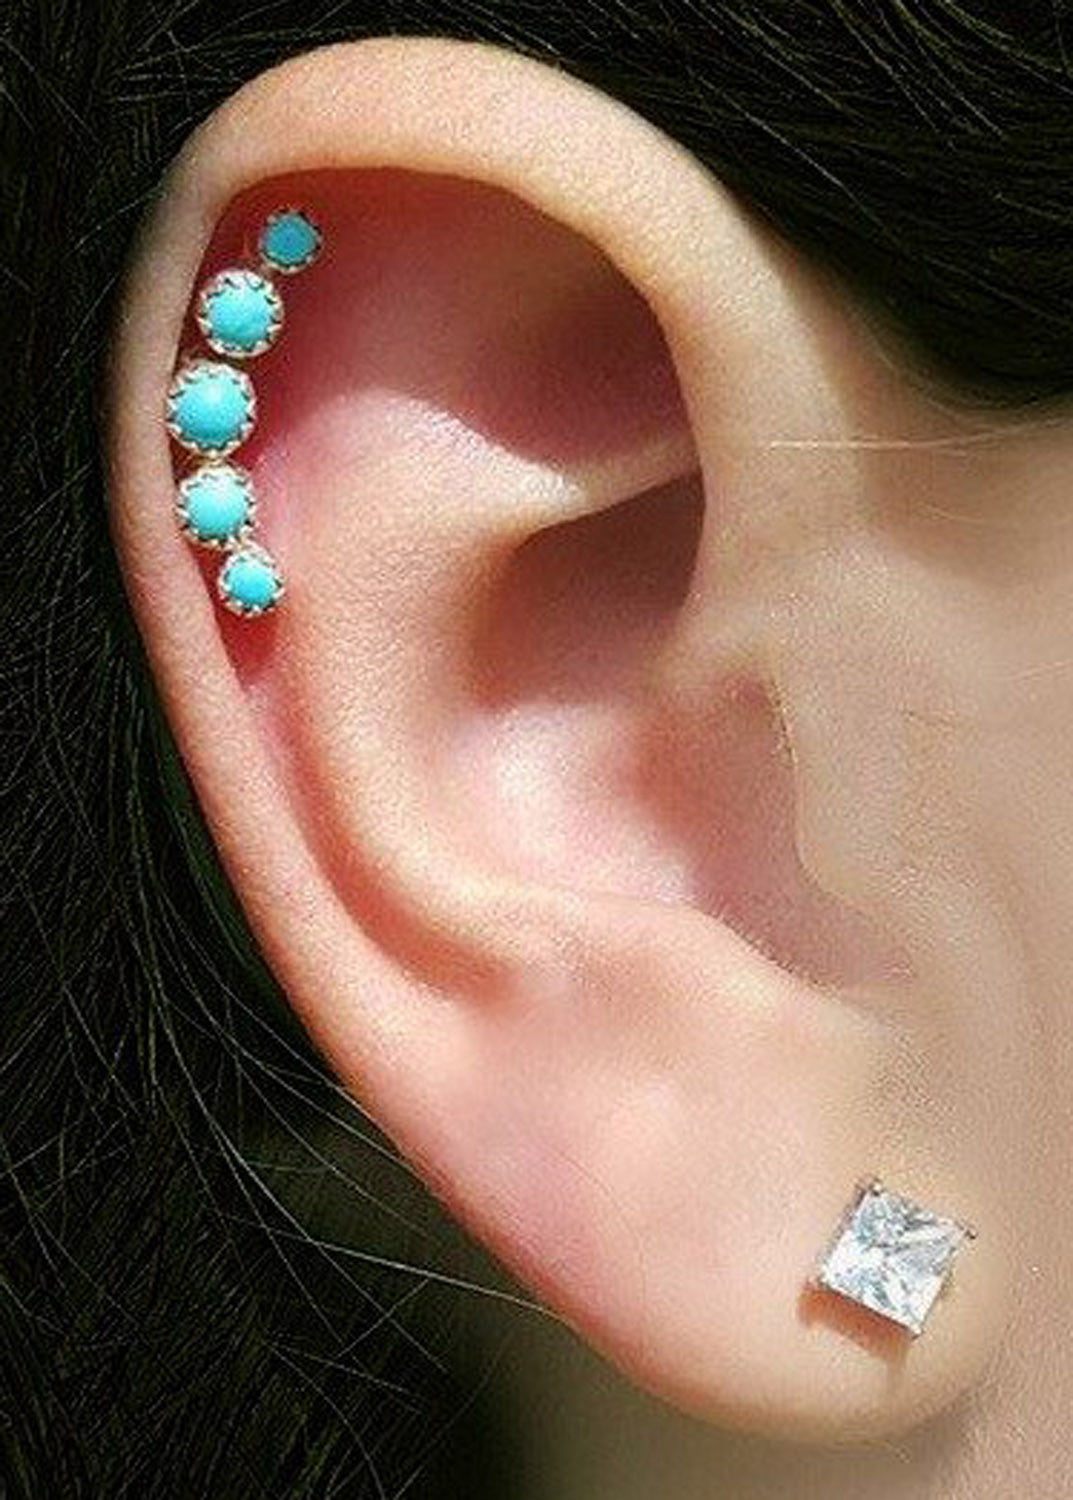 Gorgeous 6 Stone Turquoise Cartilage Piercing Earrings Jewelry at MyBodiArt.com